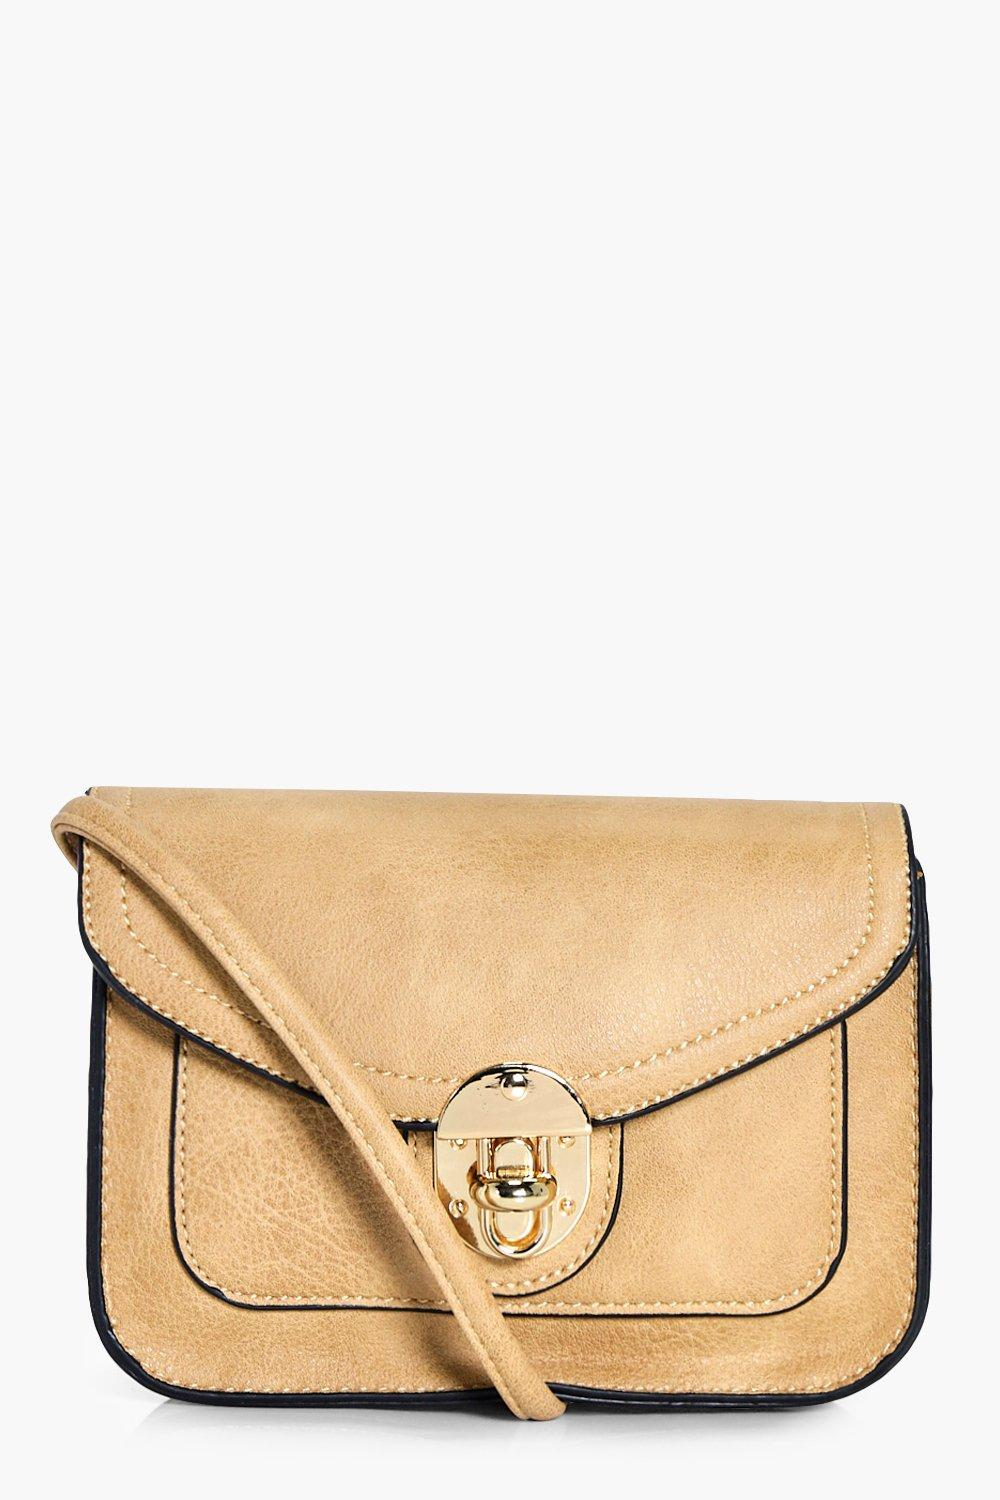 Lock Structured Cross Body - taupe - Natasha Lock